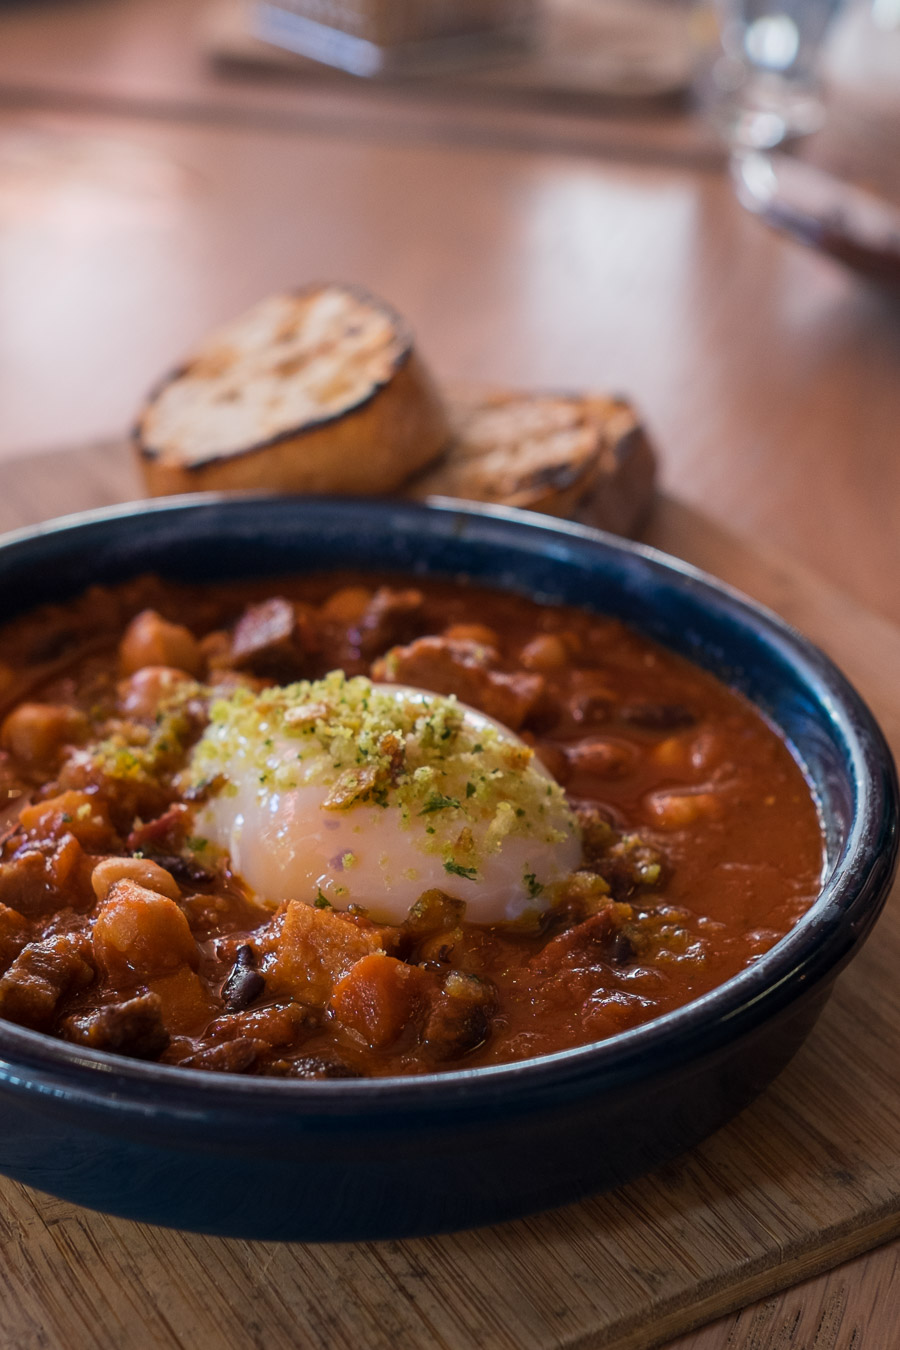 From the AU$18 Rapido menu - feijoada - Brazilian pork and bean stew, slow cooked egg, bread